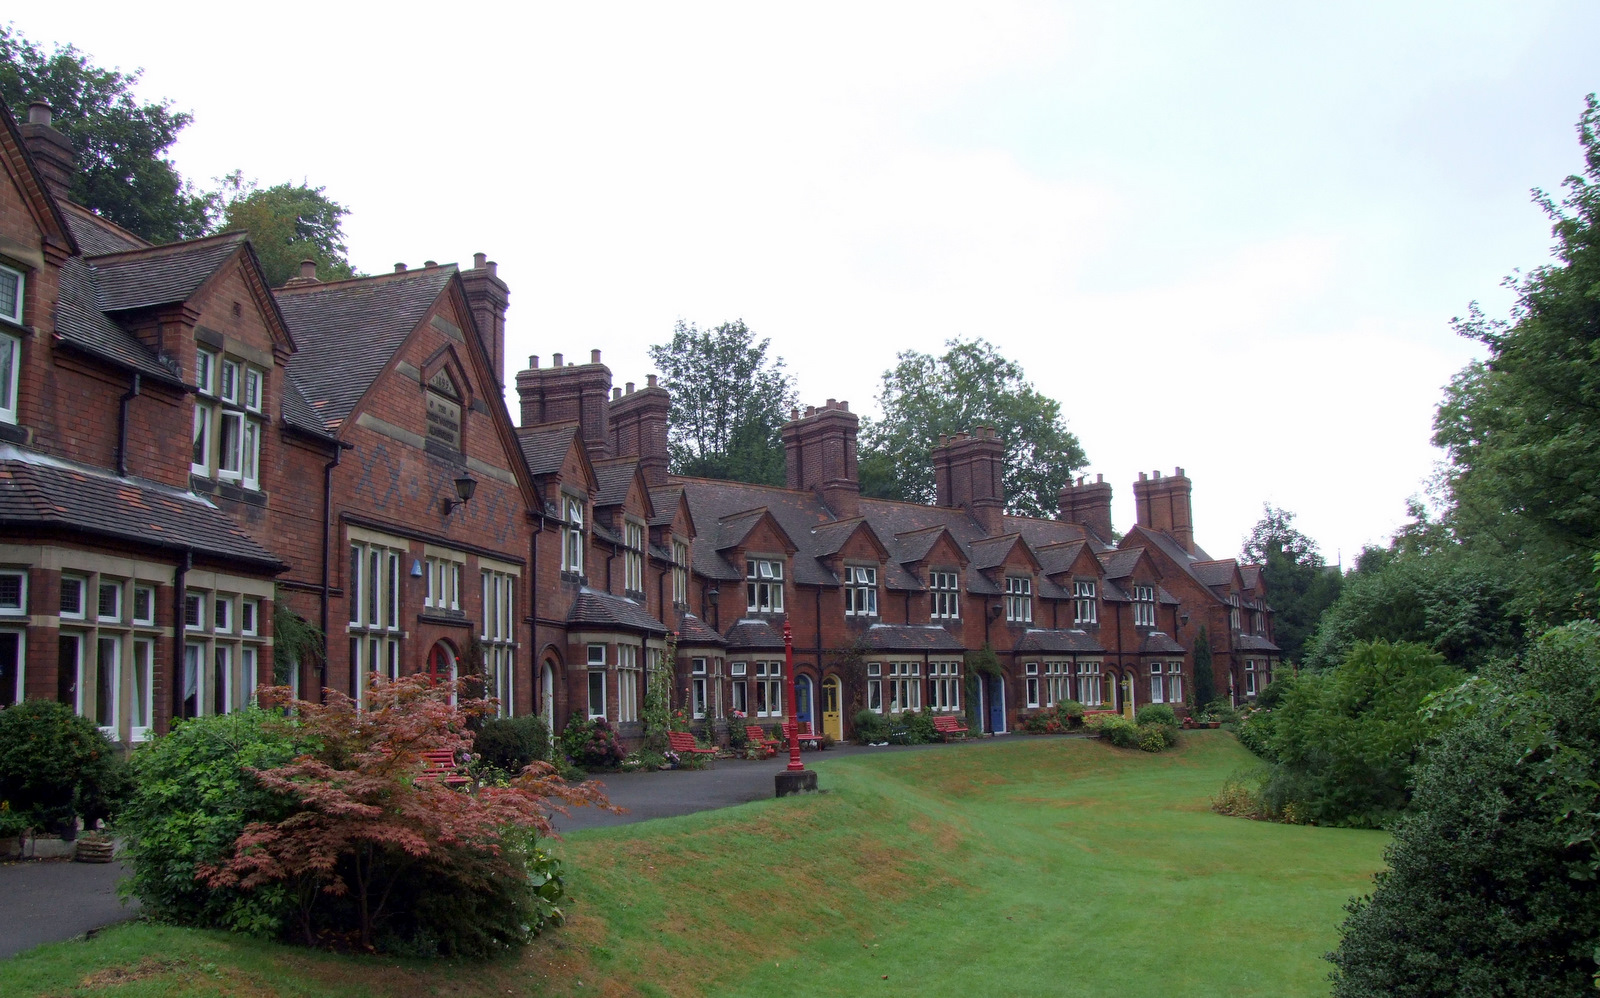 The Woofinden Almshouses